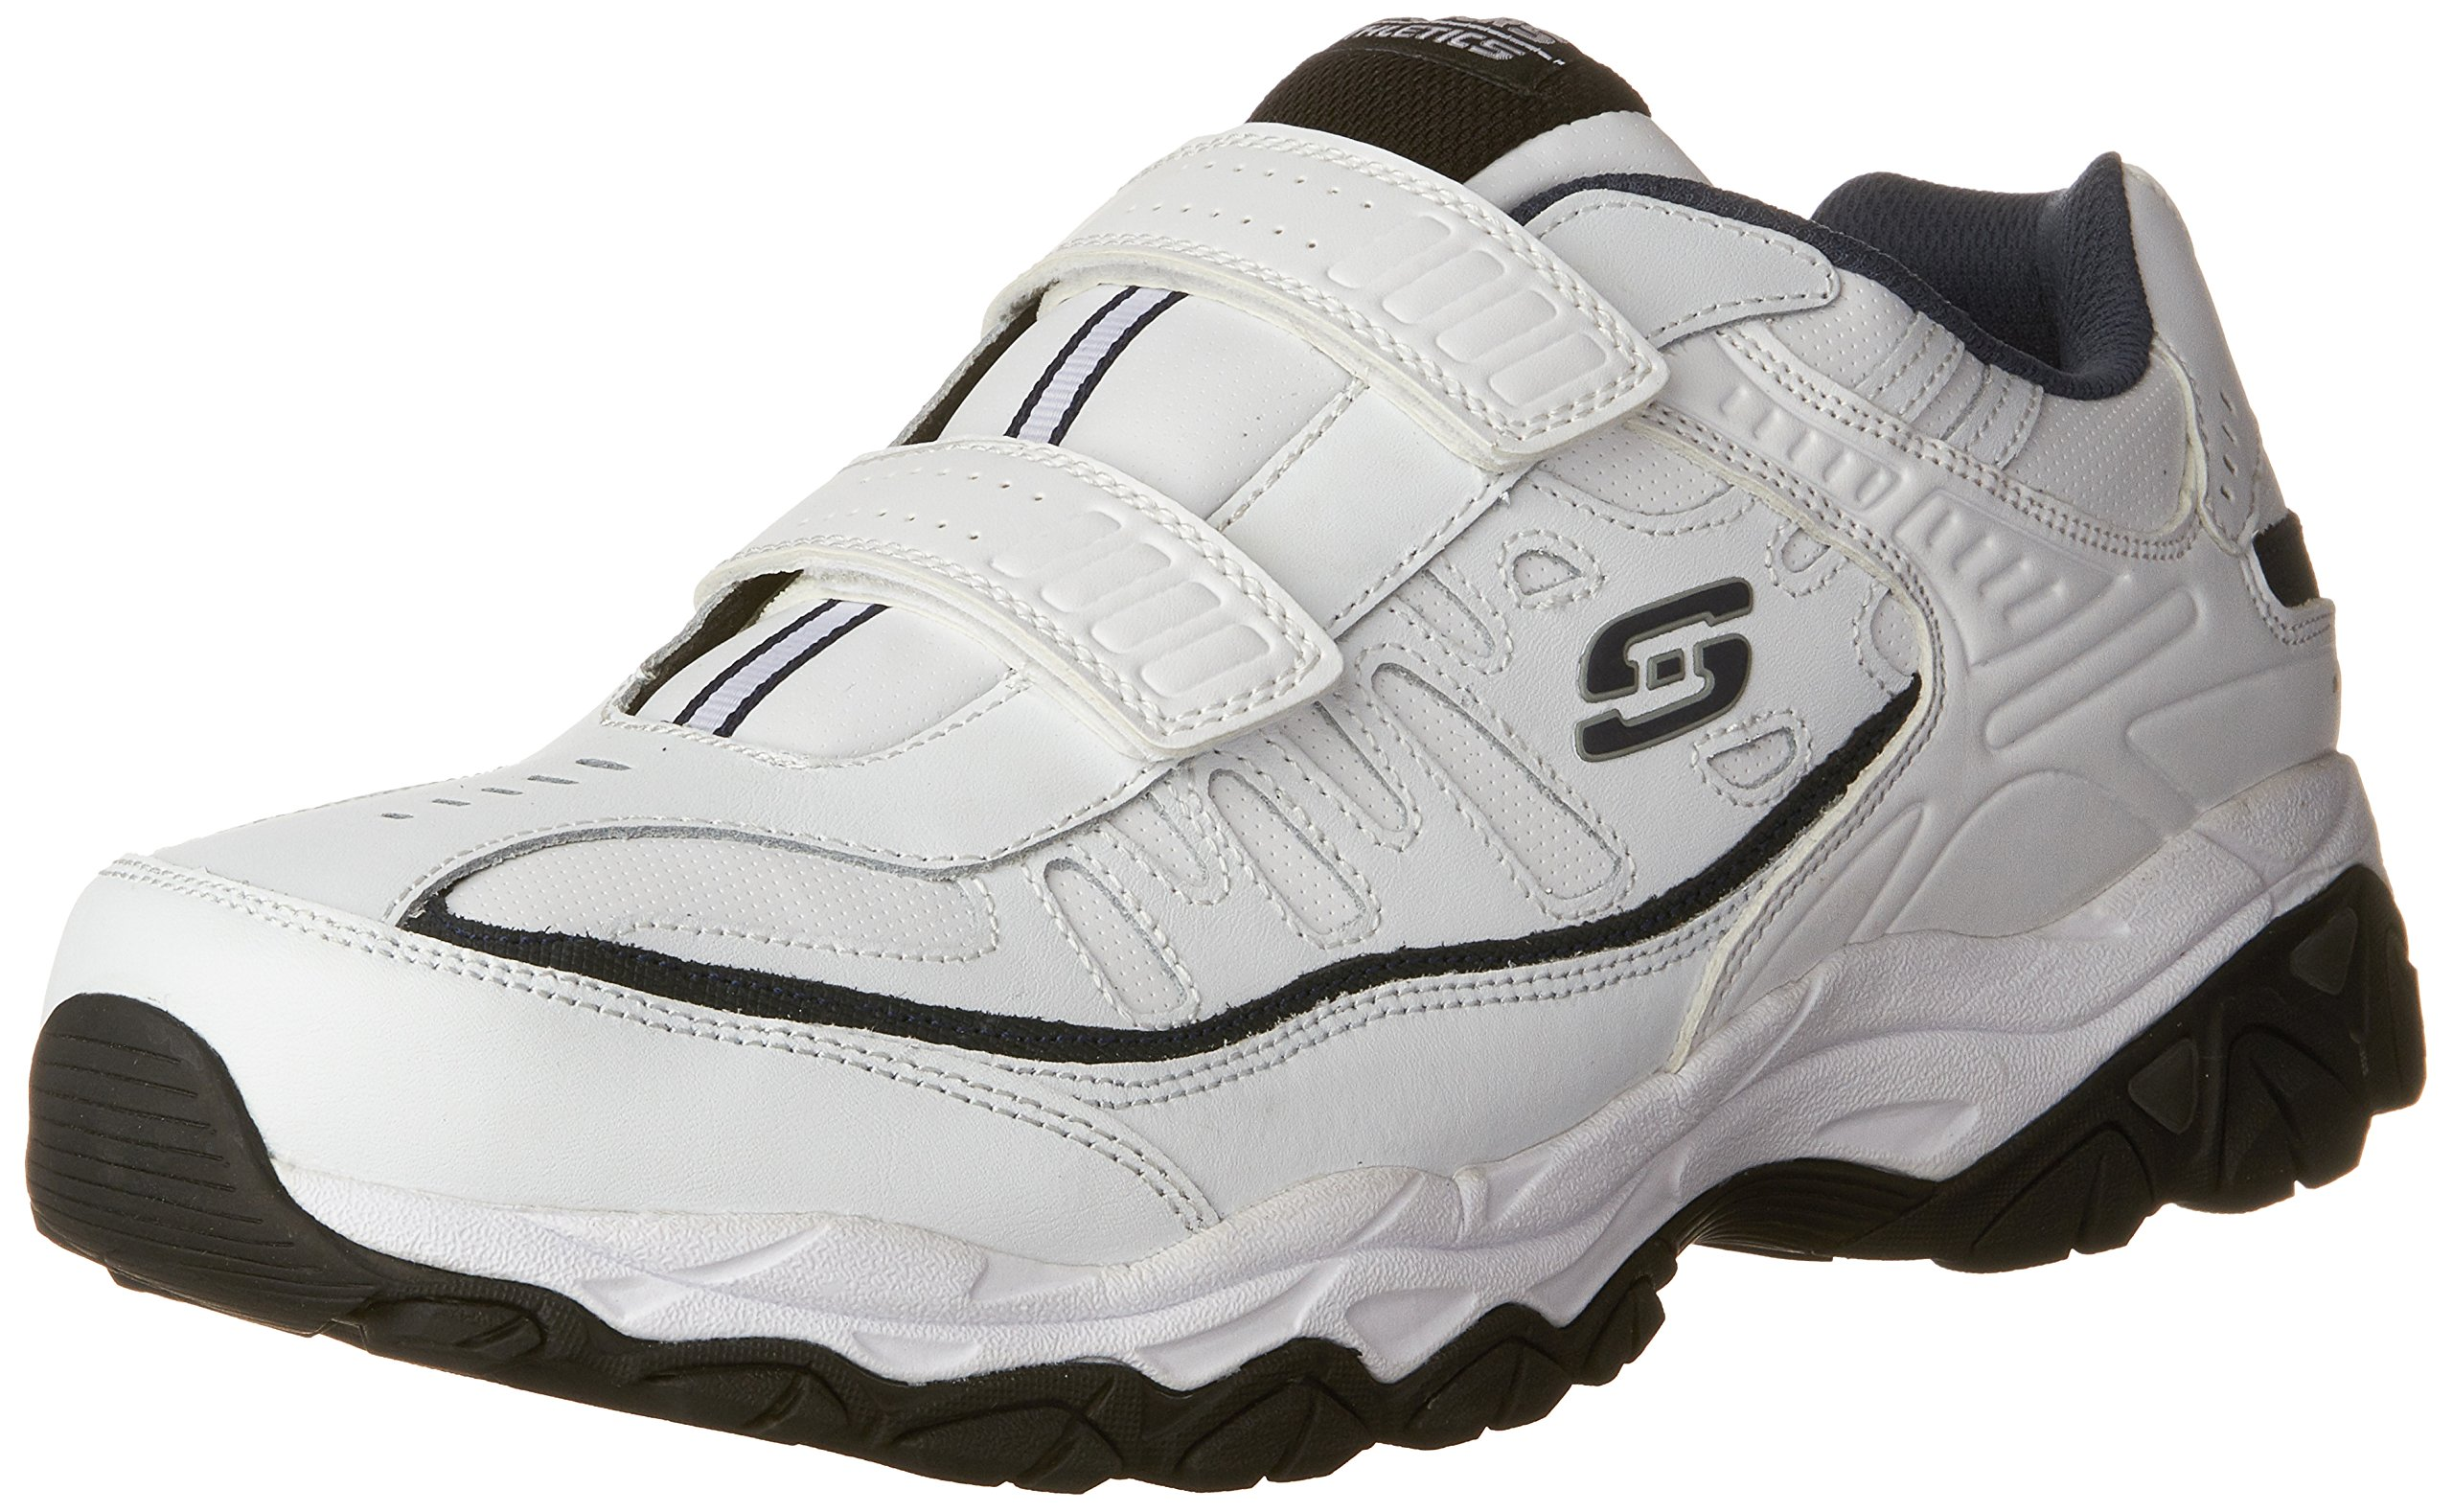 Skechers Men's AFTERBURN M.FIT- FIN Strike Memory Foam Velcro Sneaker, White/Navy, 11.5 4E US by Skechers